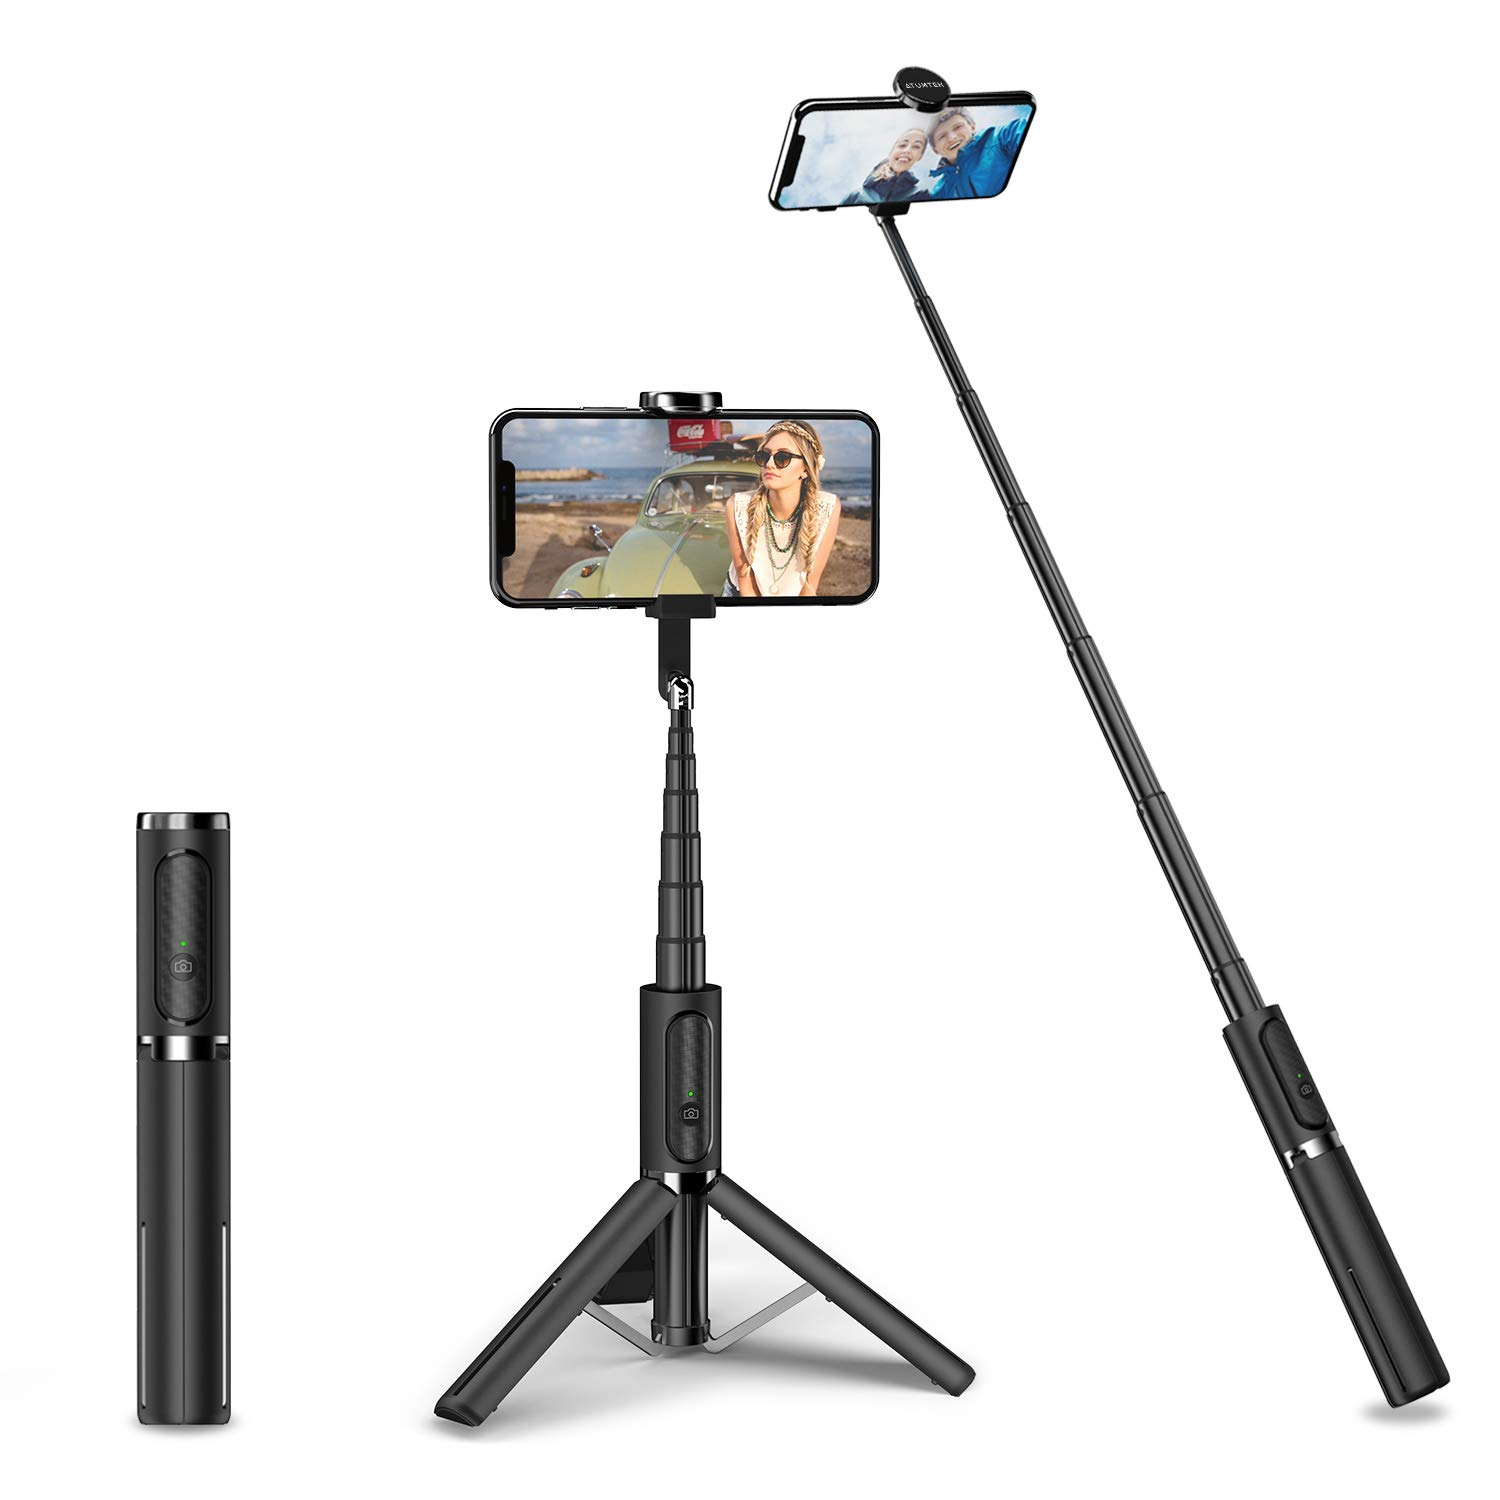 ATUMTEK Bluetooth Selfie Stick Tripod, Mini Extendable 3 in 1 Aluminum Selfie Stick with Wireless Remote and Tripod Stand 270° Rotation for iPhone Xs Max/XS/XR/X/8 Plus/8, Samsung and Smartphones by ATUMTEK